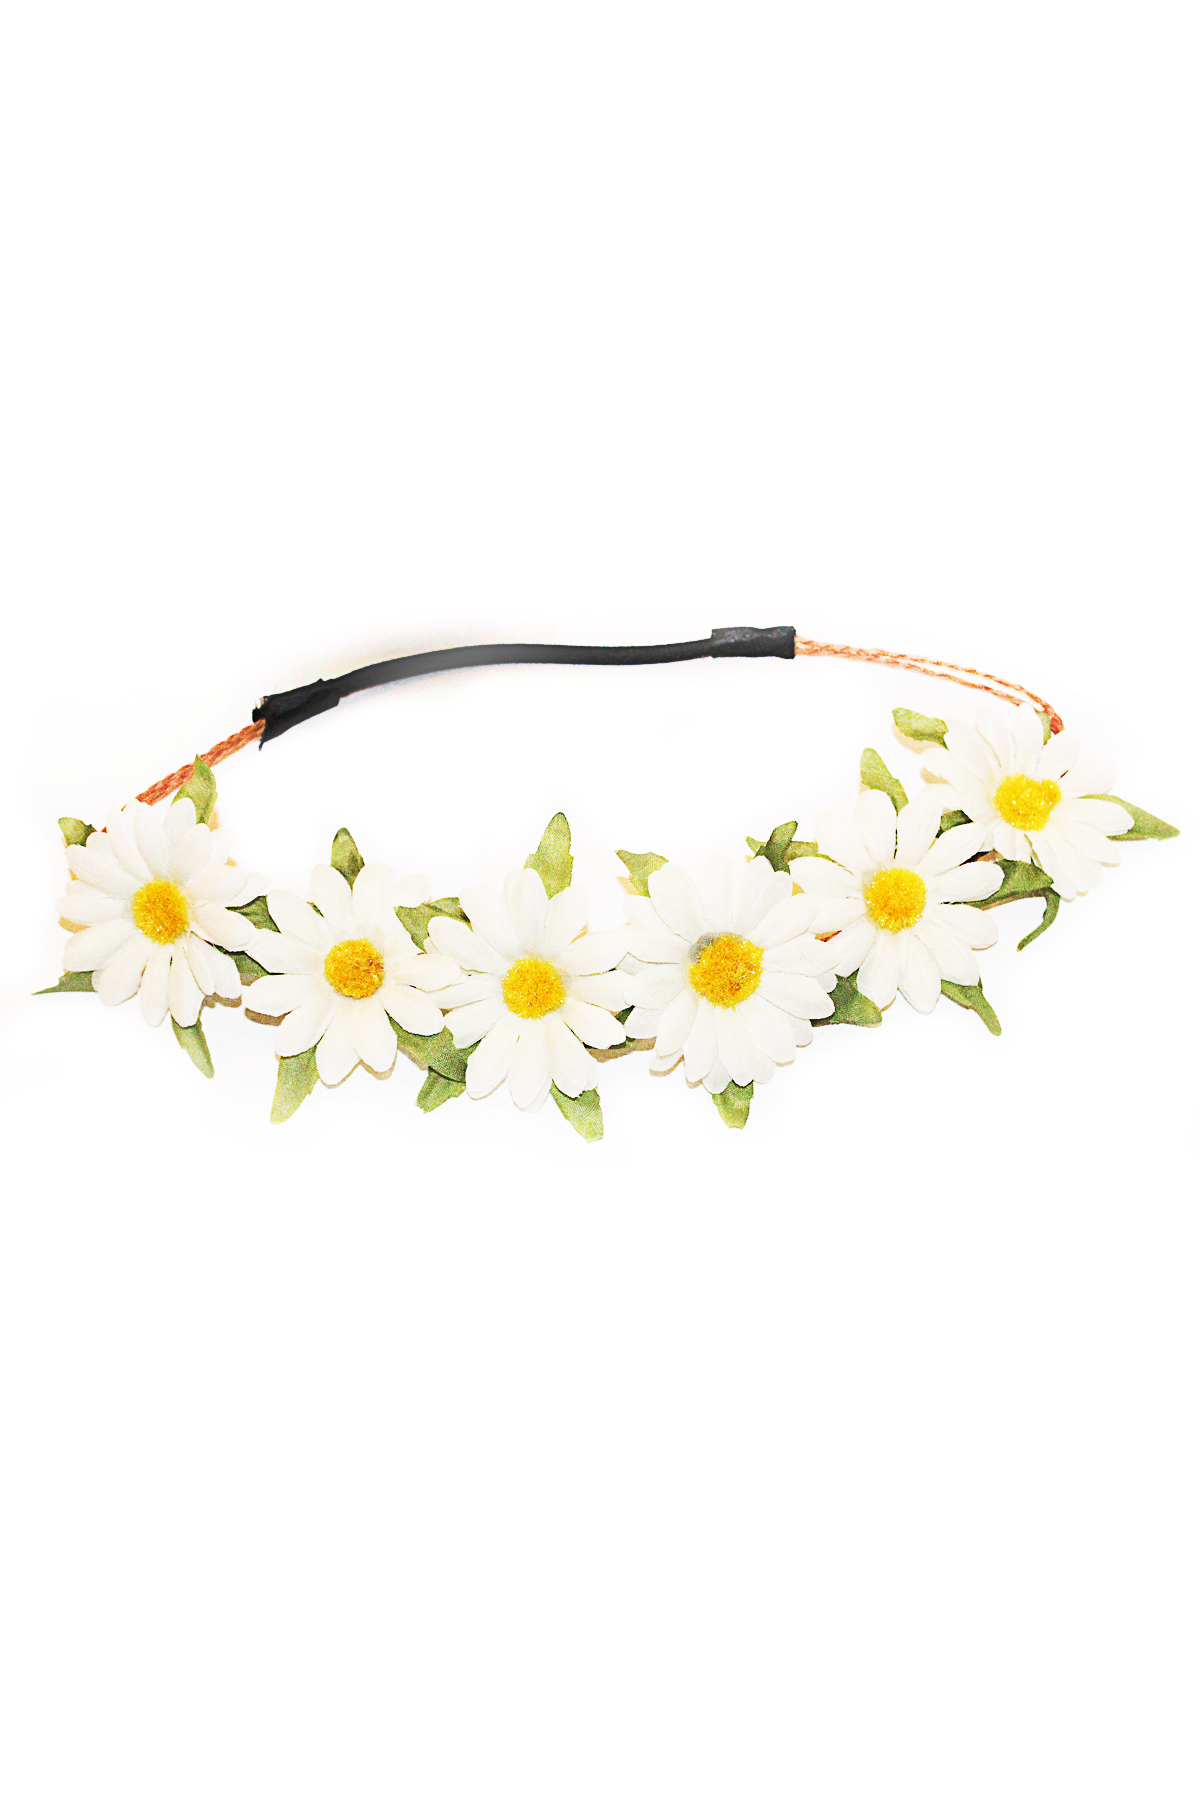 Daisy flower crown tumblr transparent